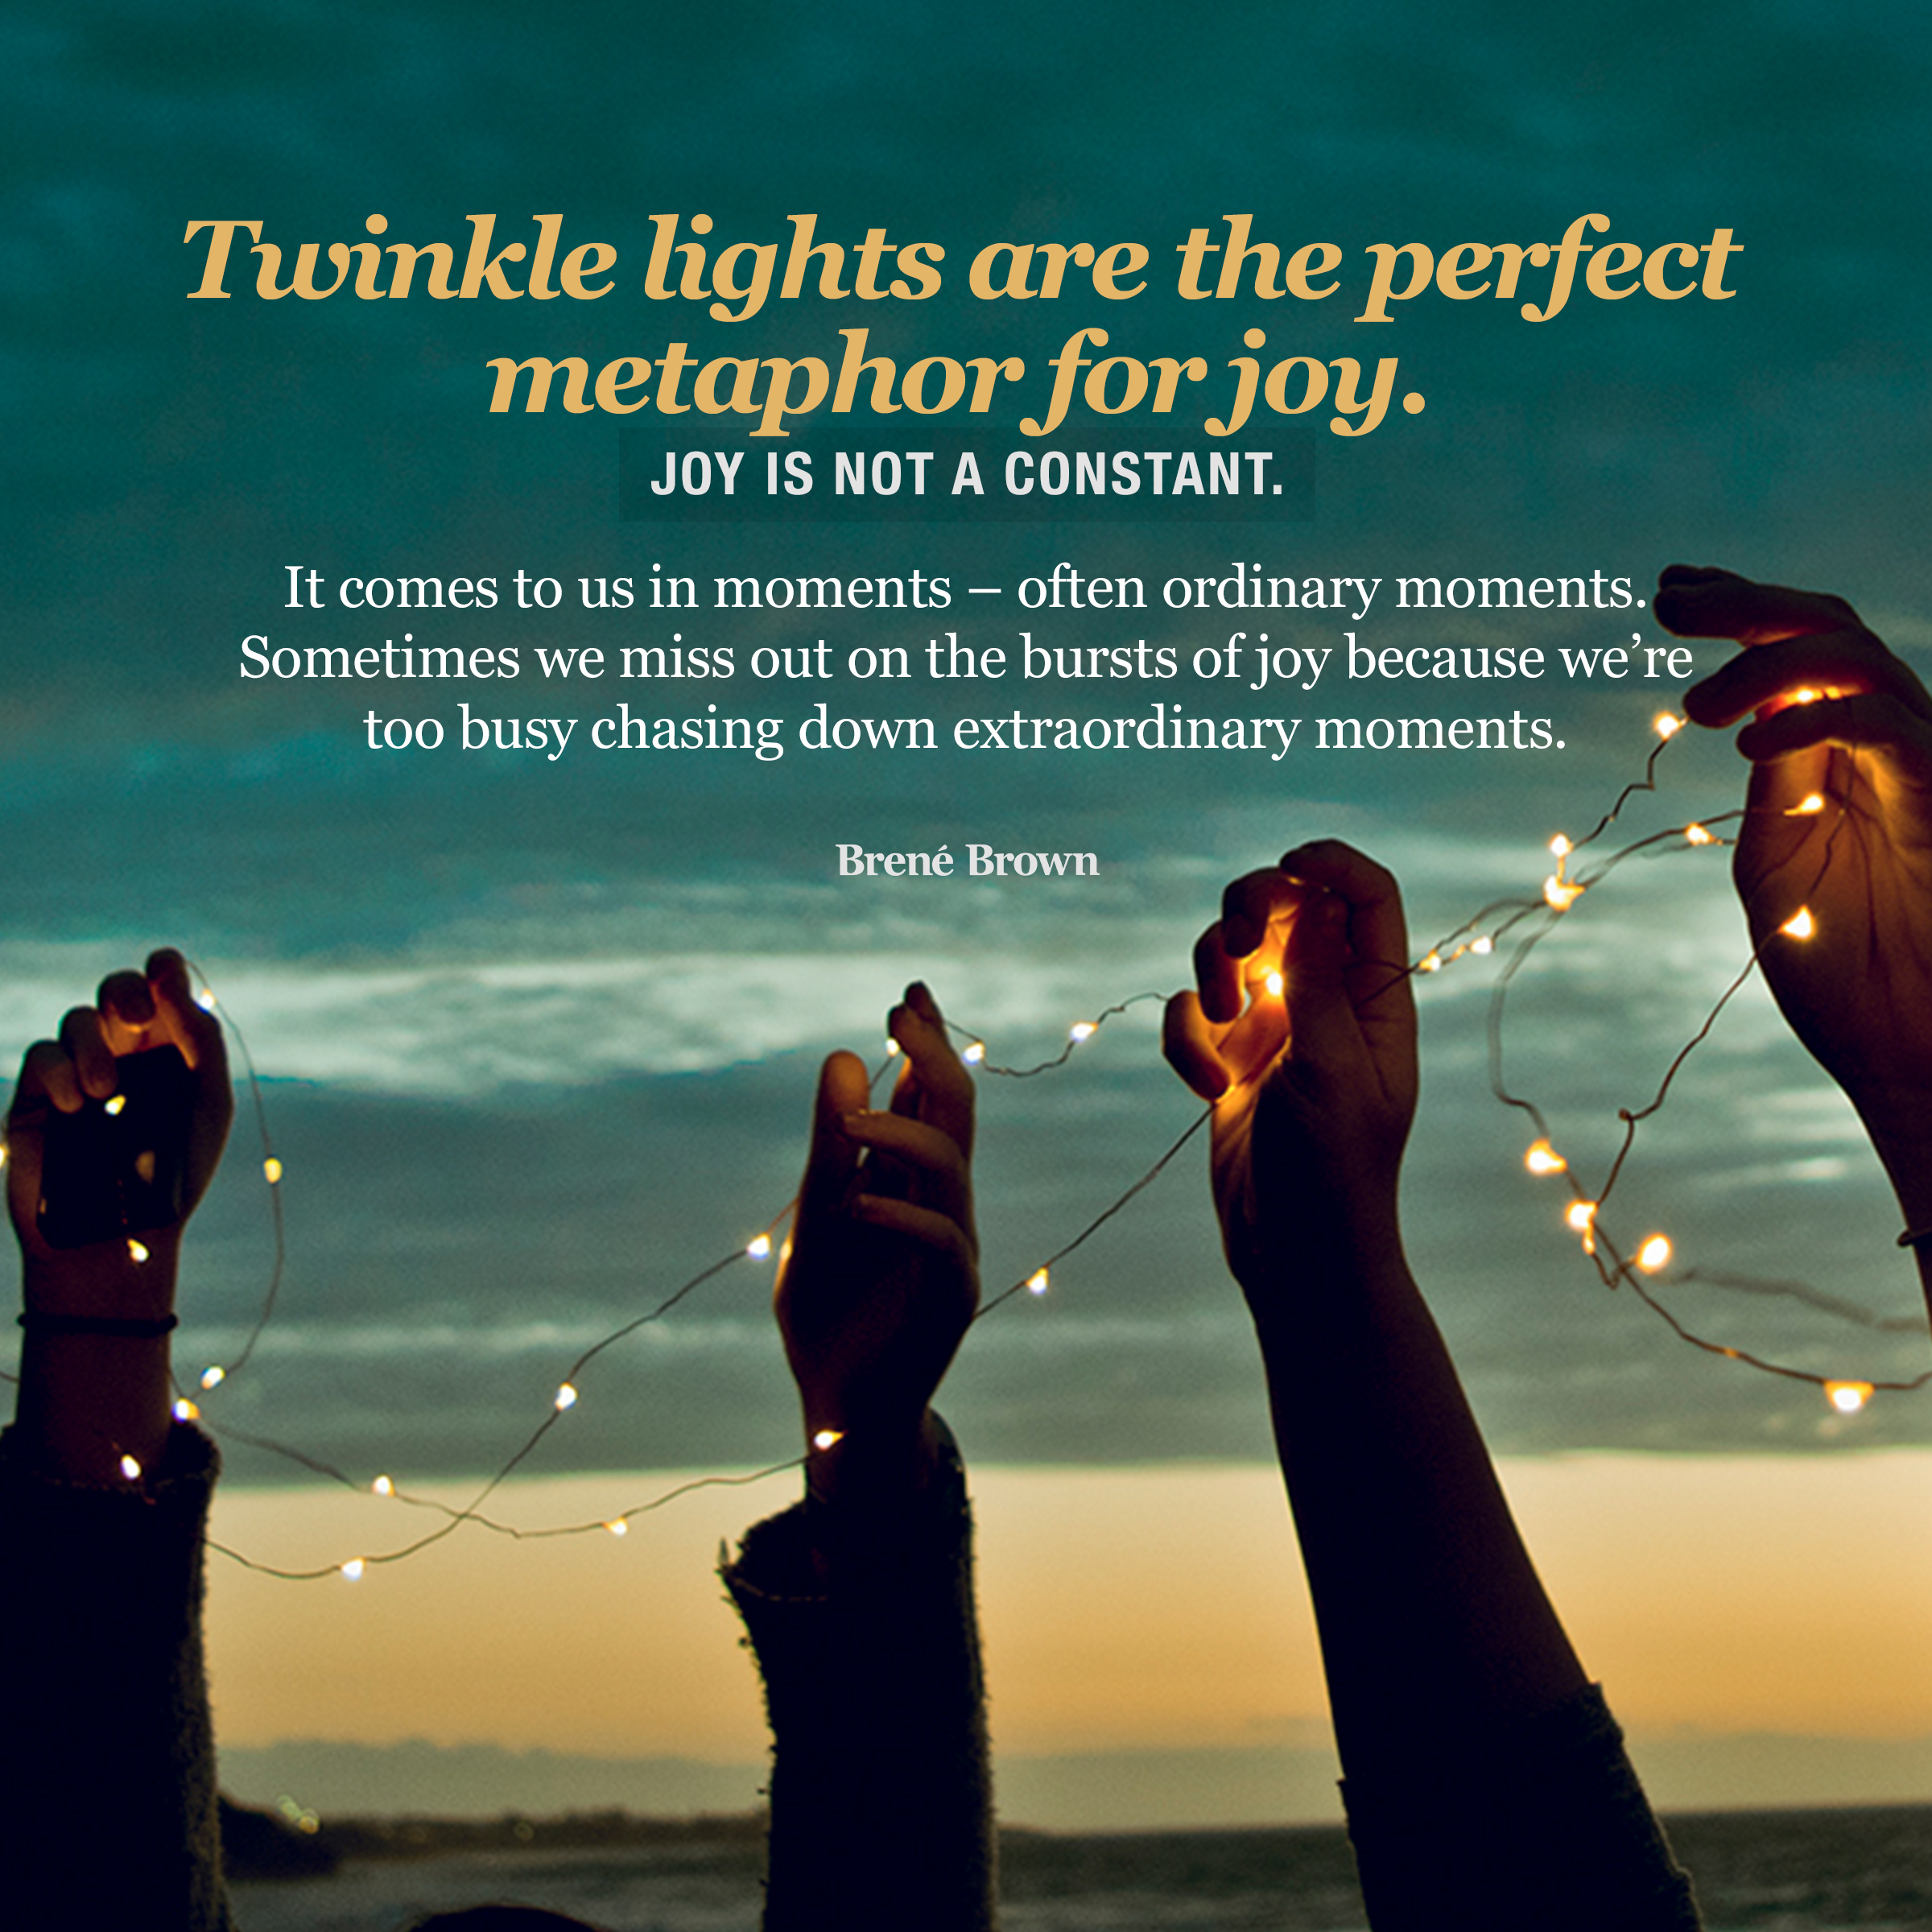 Twinkle-lights-are-the-perfect-metaphor-for-joy-1.jpg